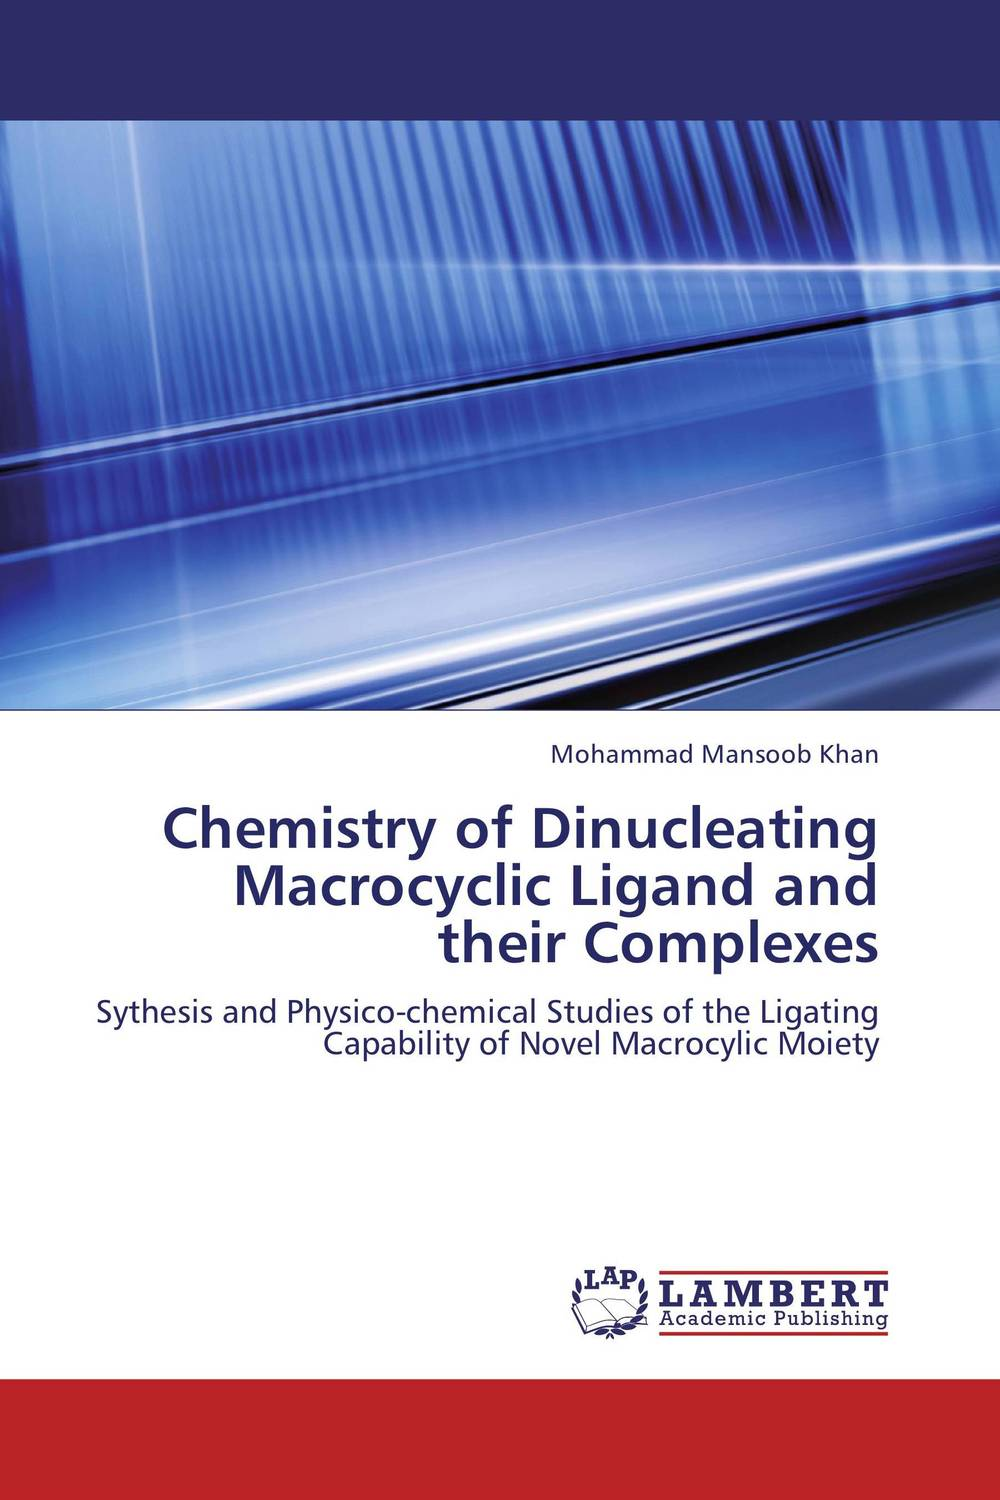 Chemistry of Dinucleating Macrocyclic Ligand and their Complexes characteristics and applications of a novel alcohol oxidase